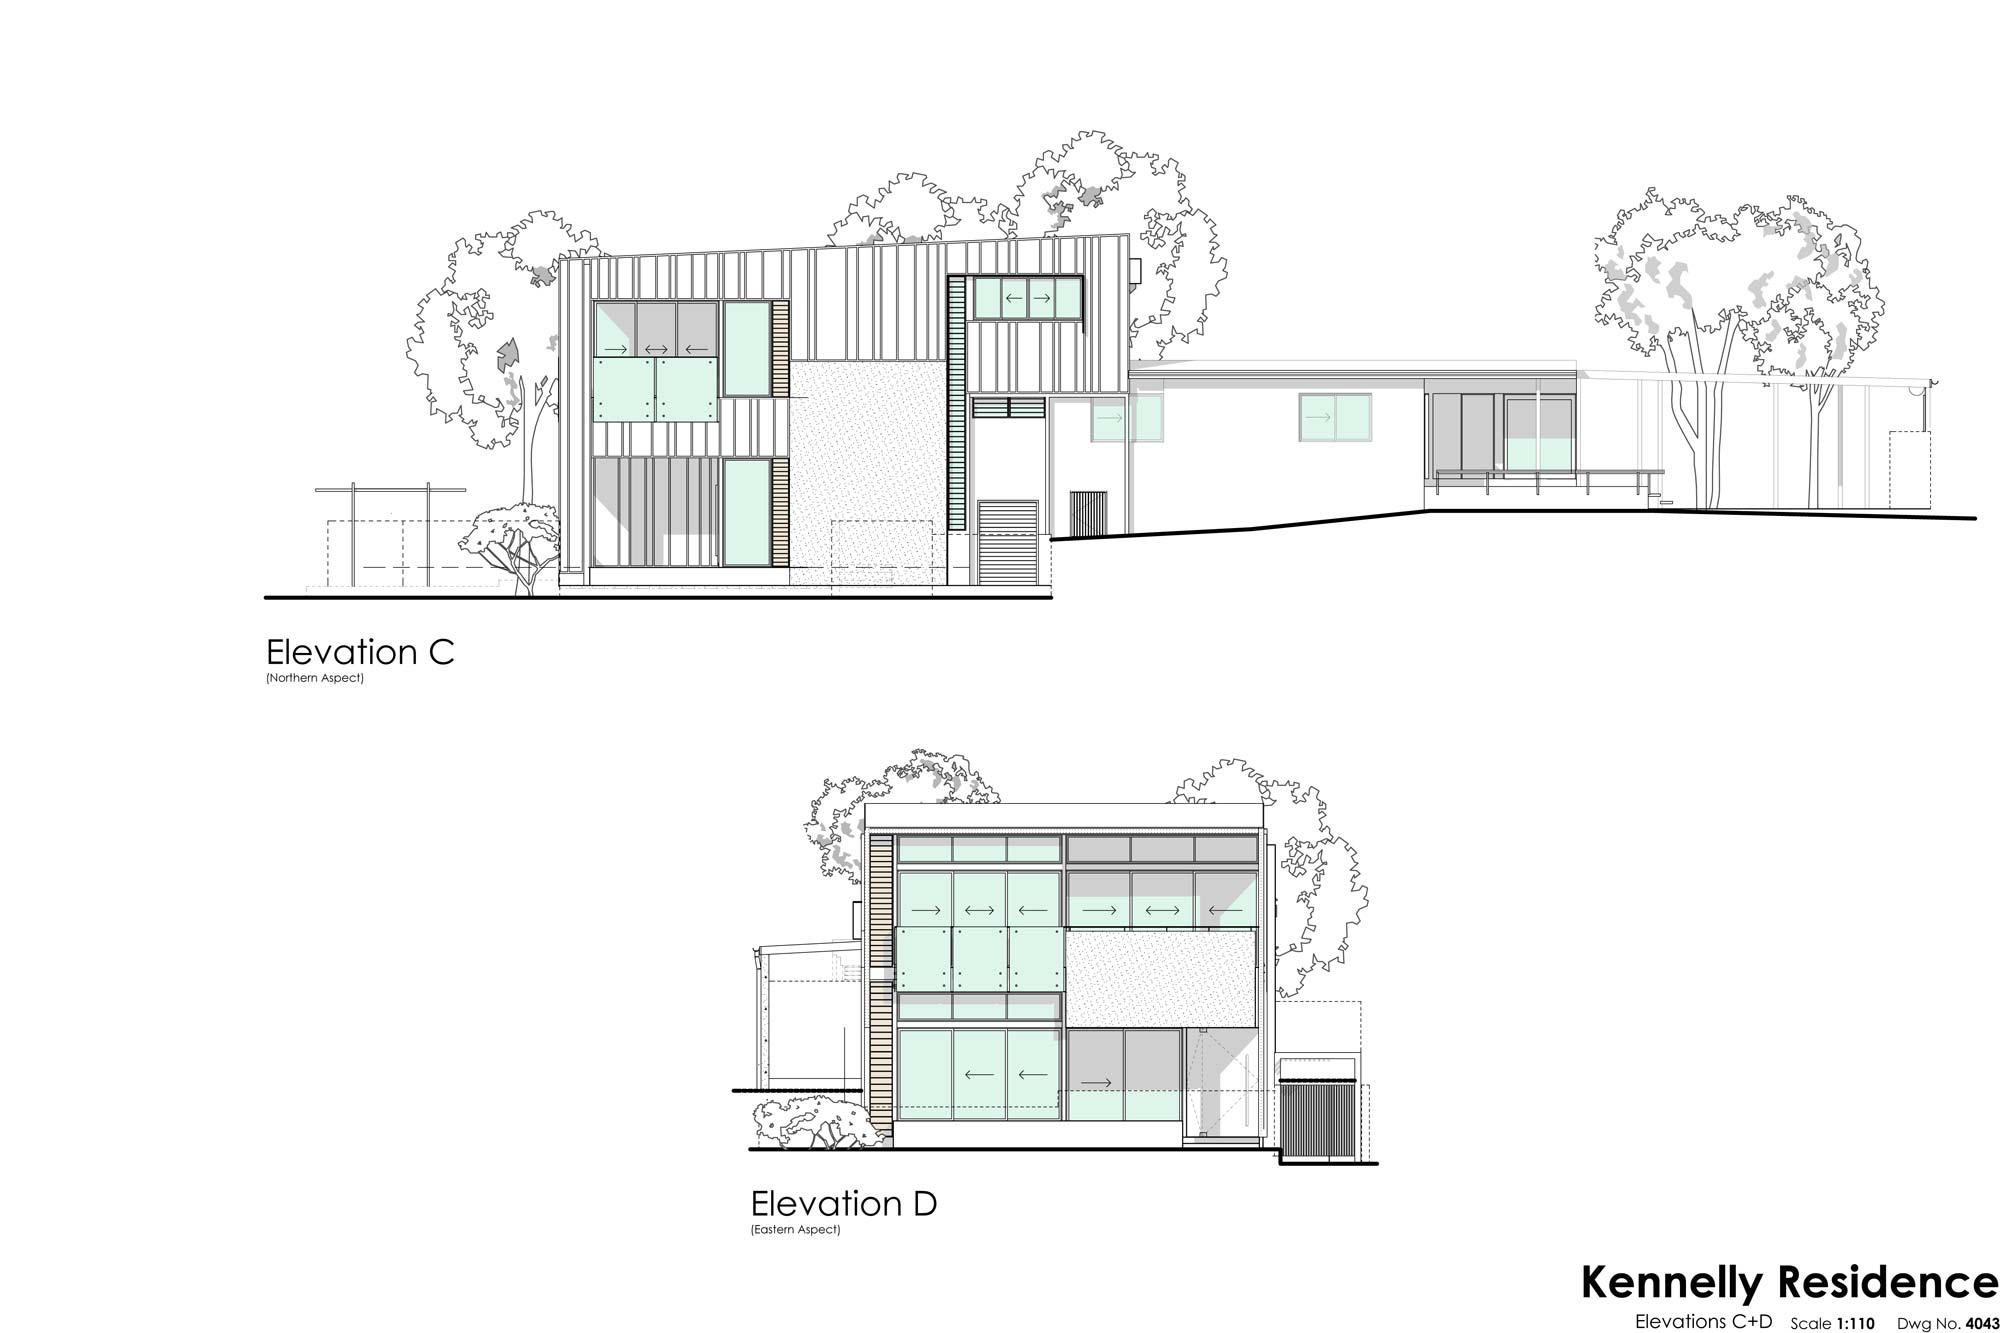 kennelly elevations C+D